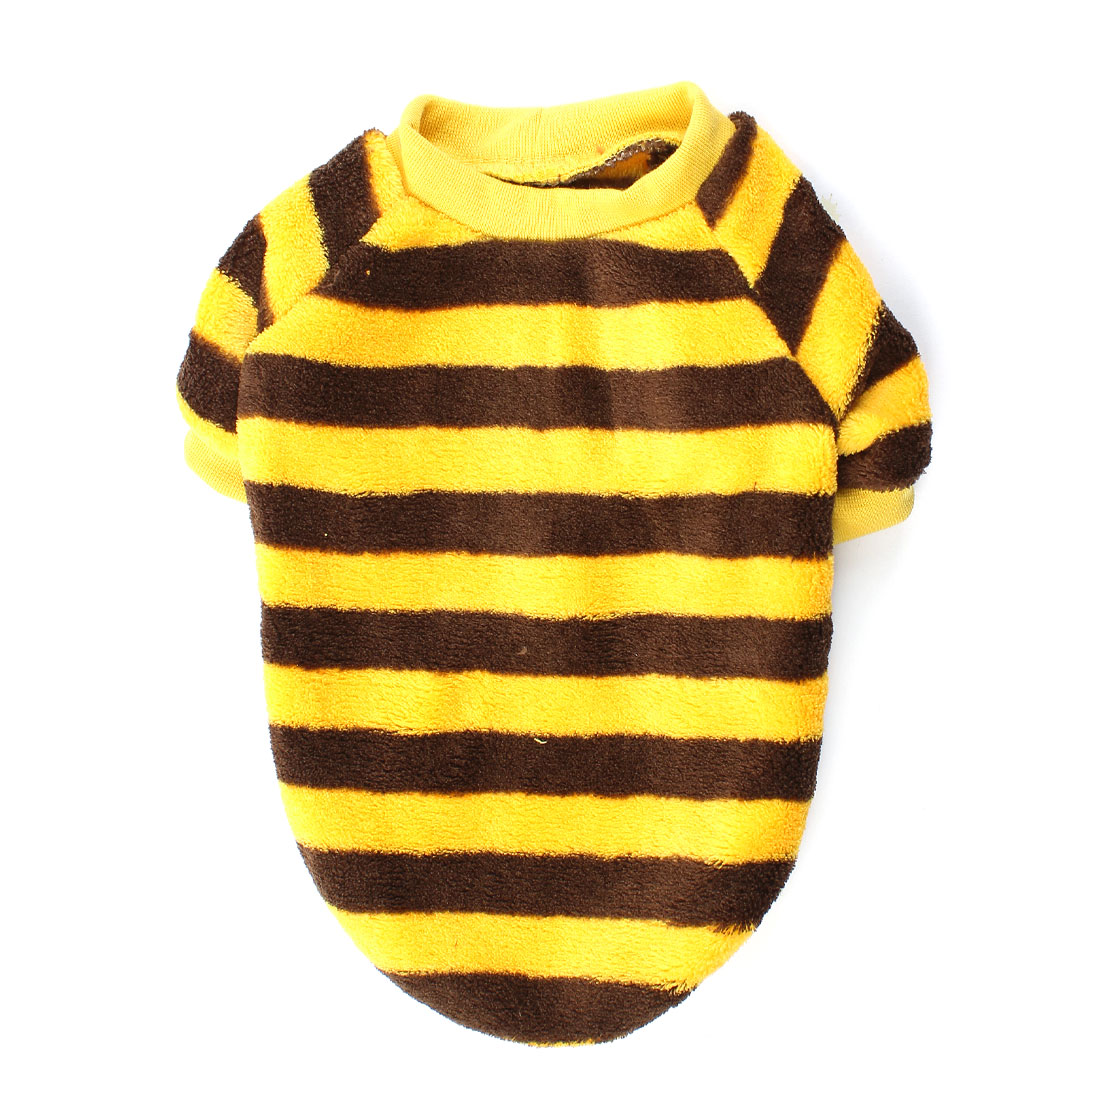 Round Collar Stripe Print Pet Dog Doggy Shirt Clothes Yellow Coffee Color M